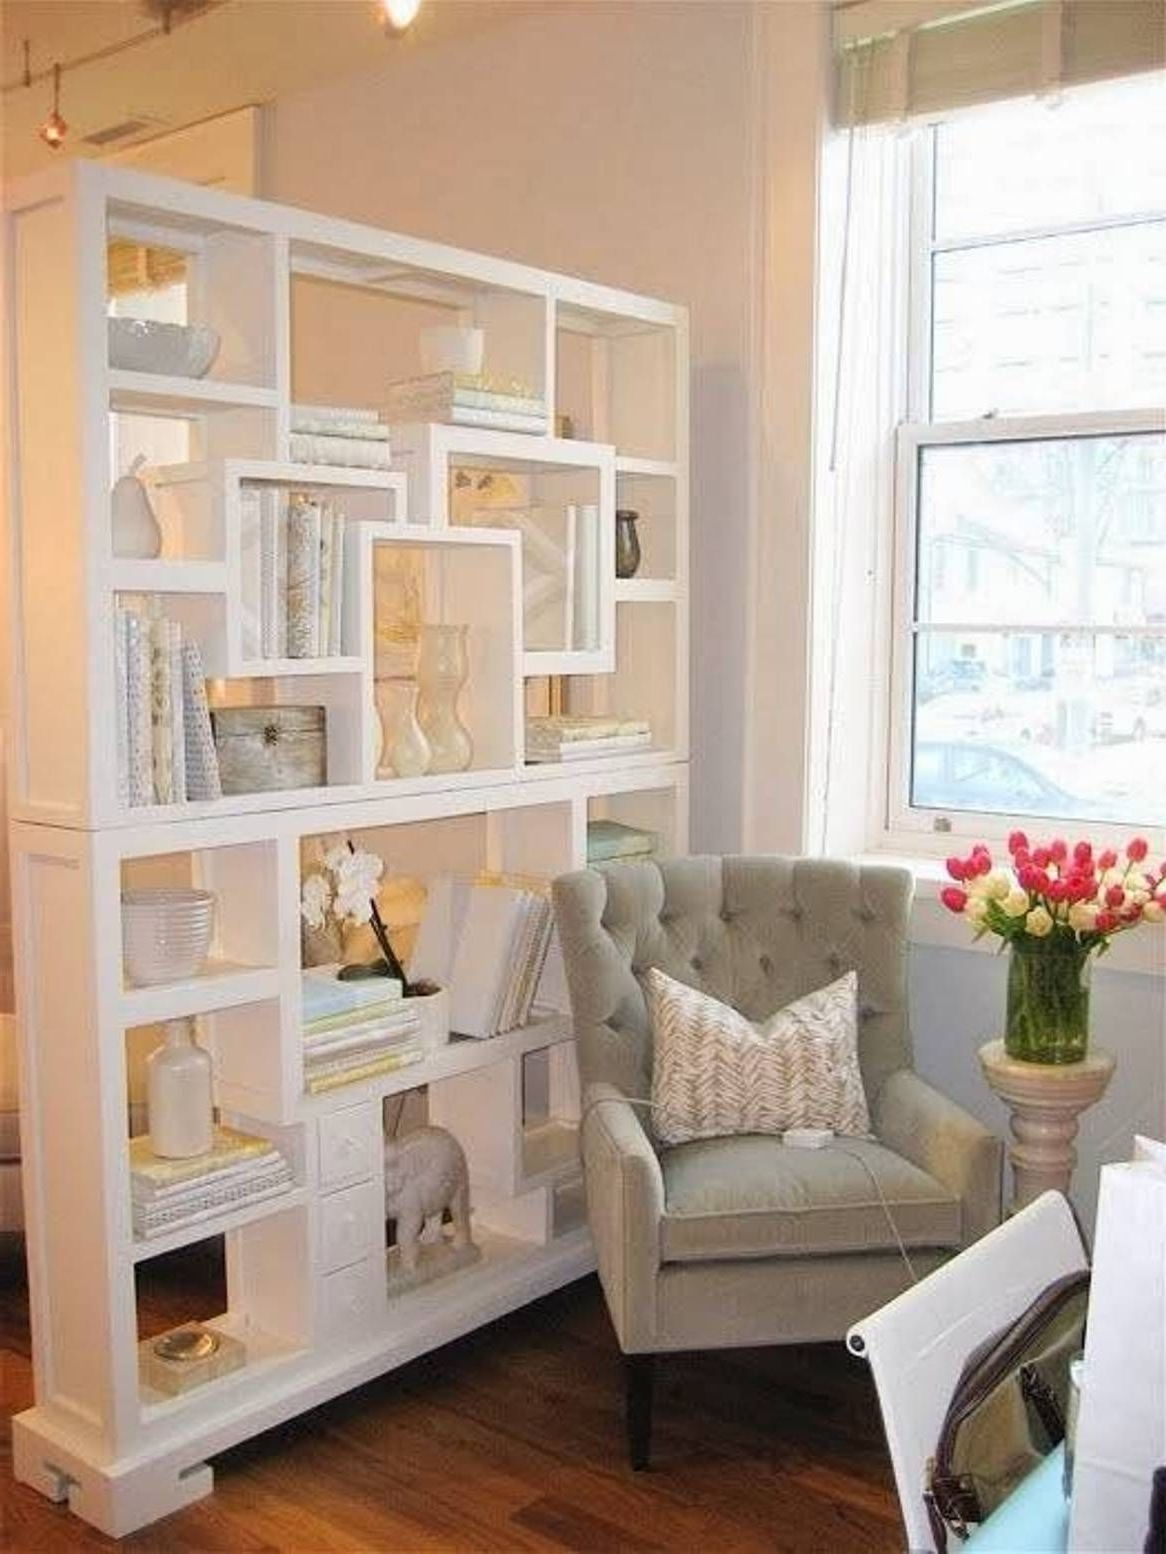 Freestanding Bookcase Living Room Divider : Living Room Divider With Current Freestanding Bookcases Wall (View 4 of 15)